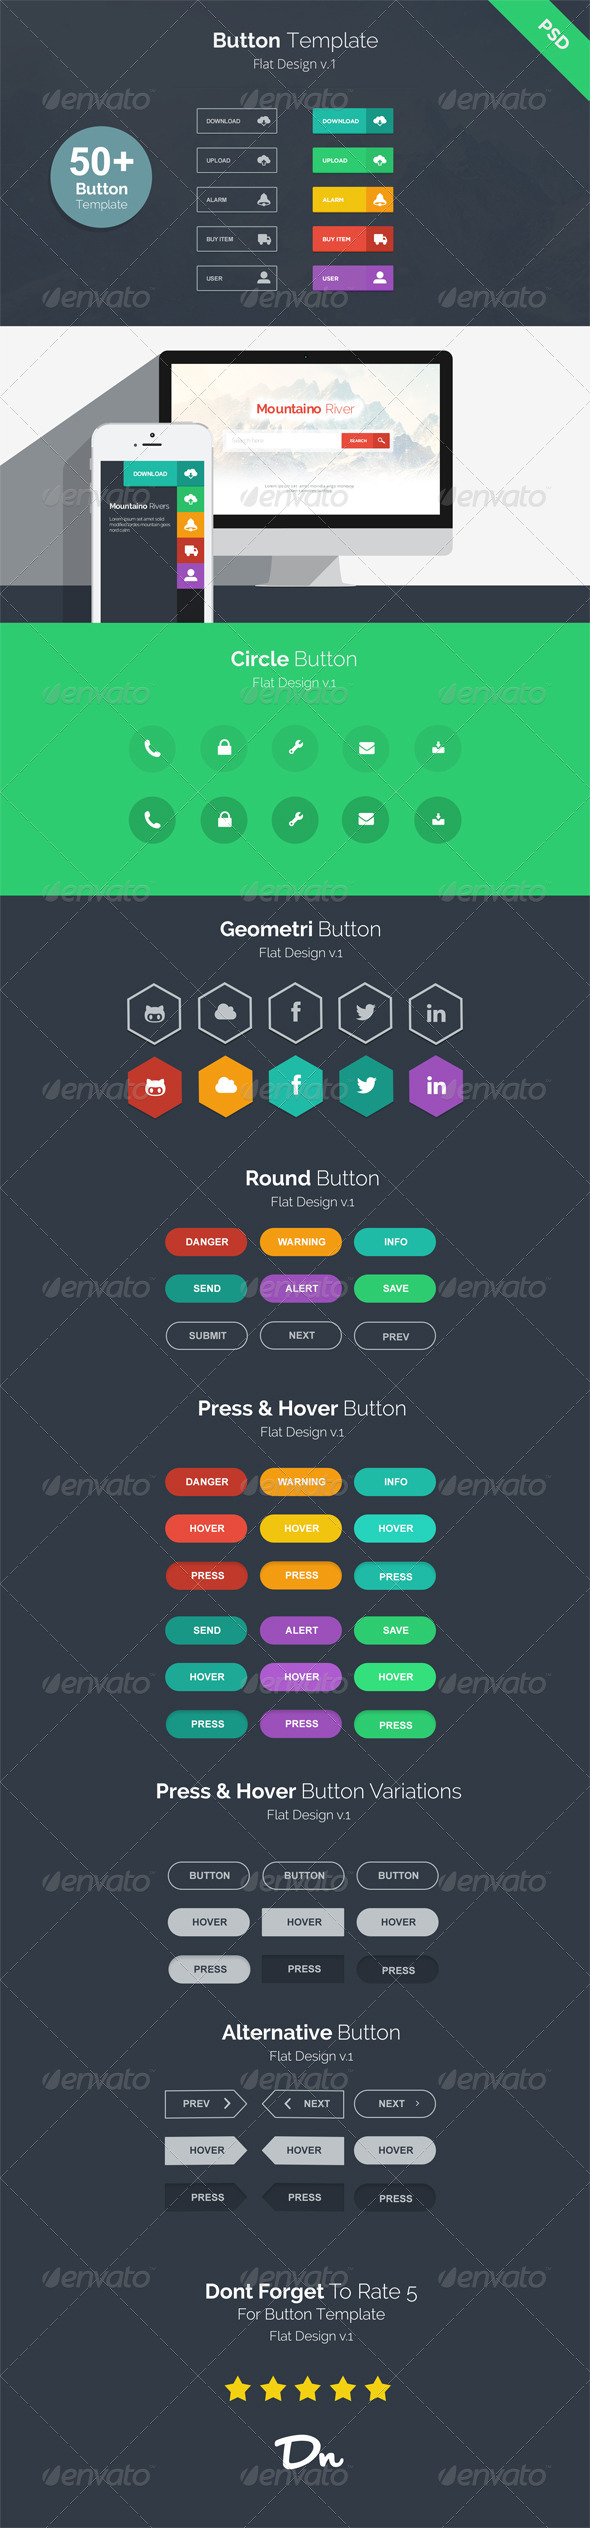 Button Template v.1 - Buttons Web Elements